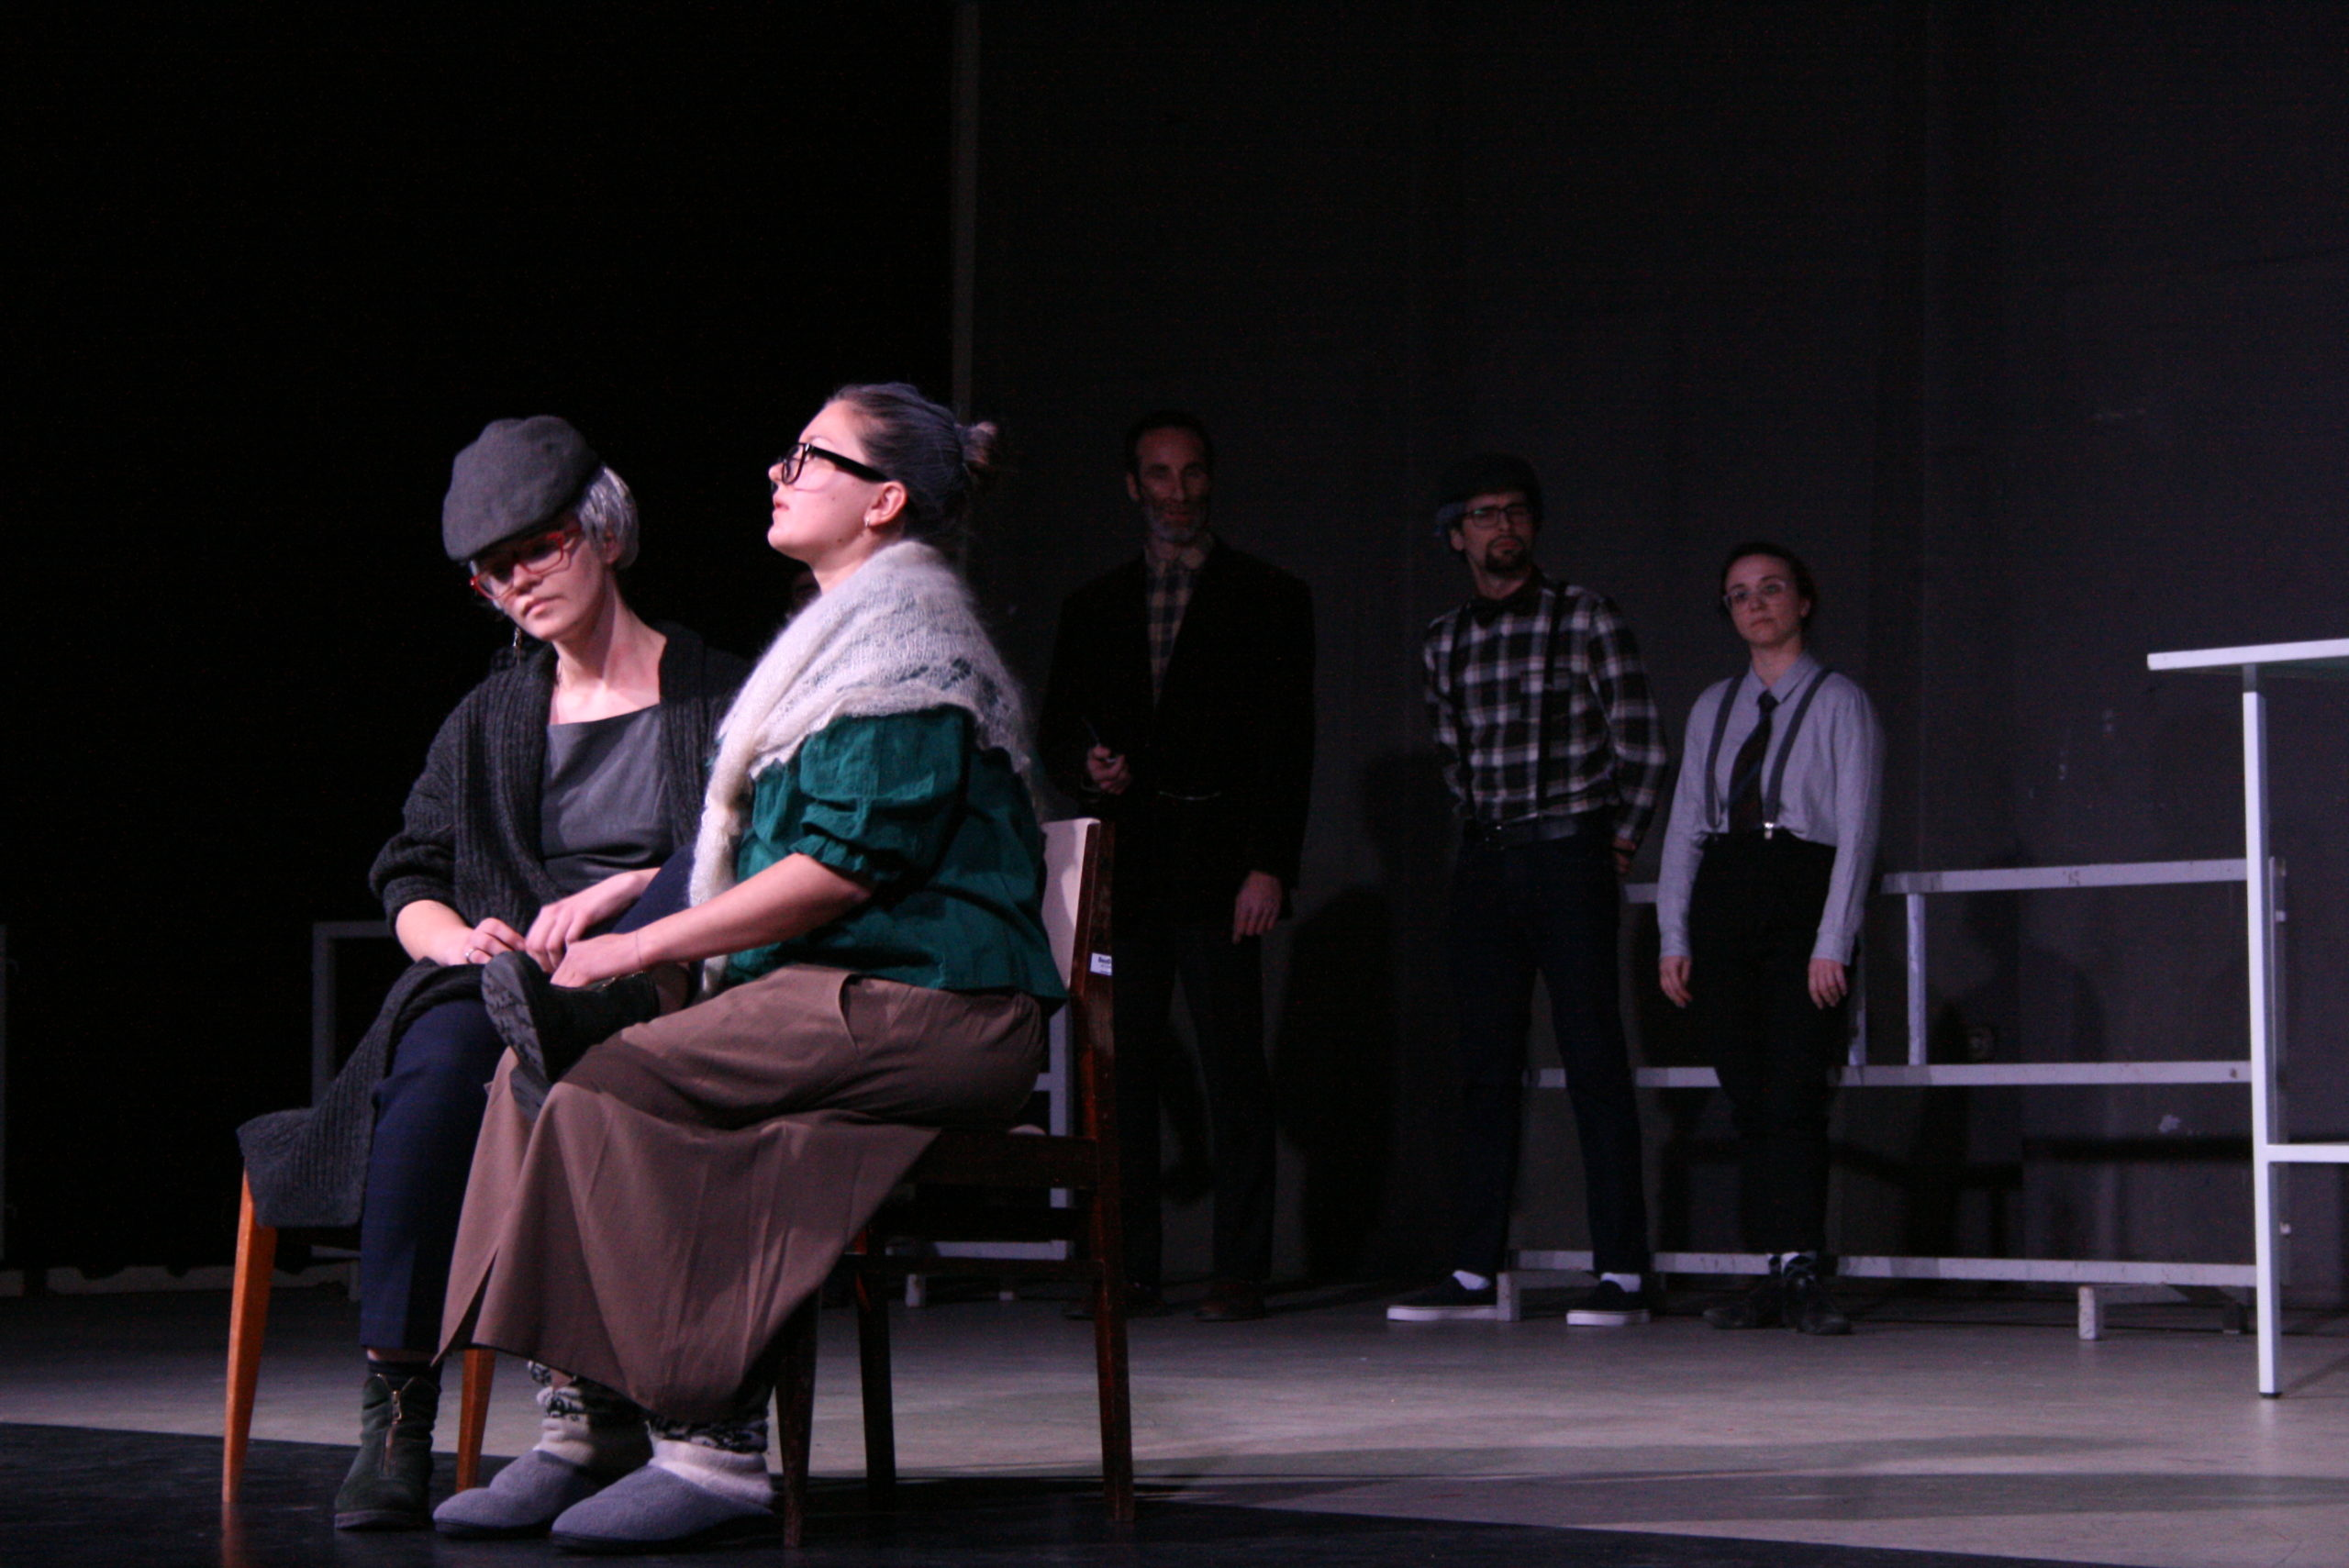 """Photo from the show """"The Chairs"""". Three actors stand at the back of the stage, wearing old-fashioned clothes, like blue plaid shirts and caps. Two female actors sit on chairs at the front, dressed like old ladies"""